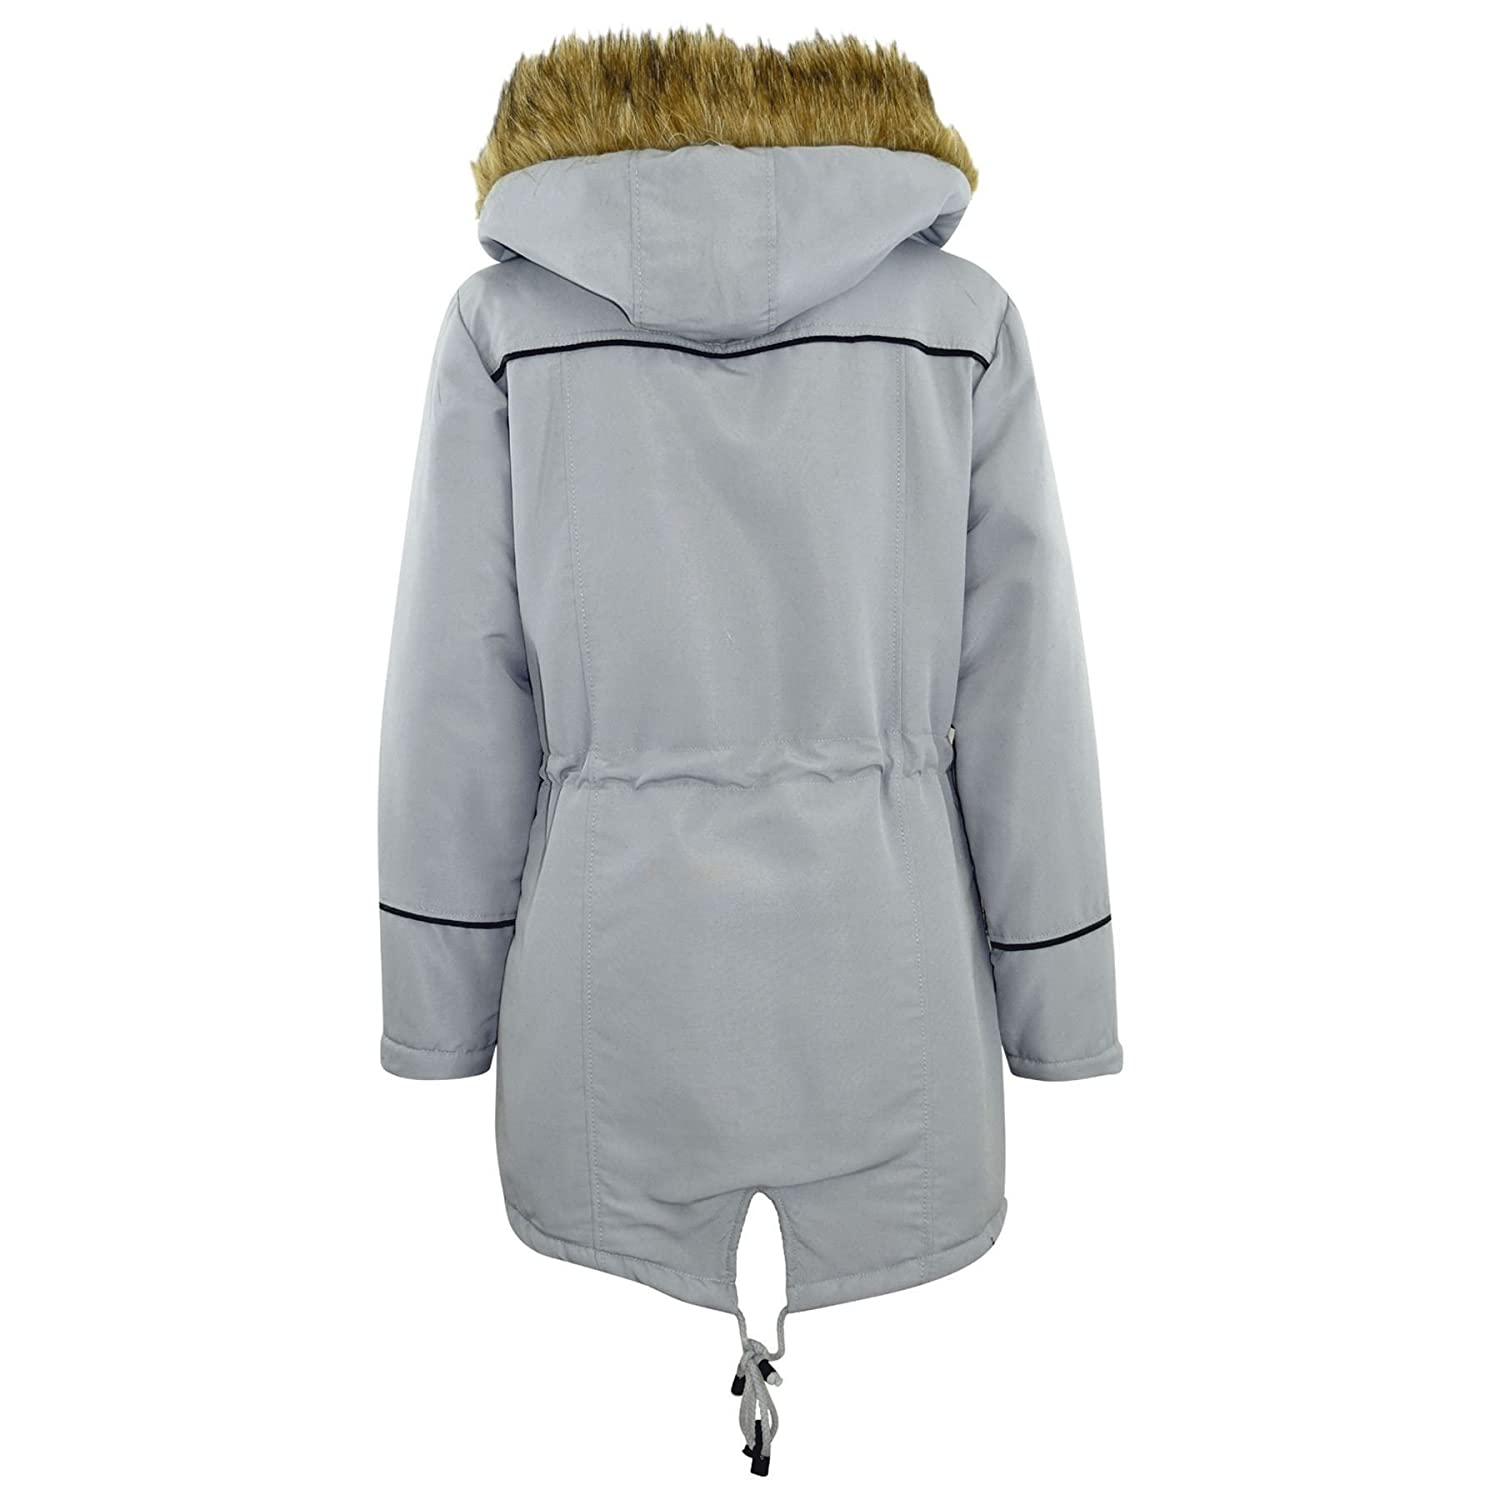 A2Z 4 Kids/® Kids Coat Designers Silver Parka Jacket Long Faux Fur Hooded Top New Age 3 4 5 6 7 8 9 10 11 12 13 Years